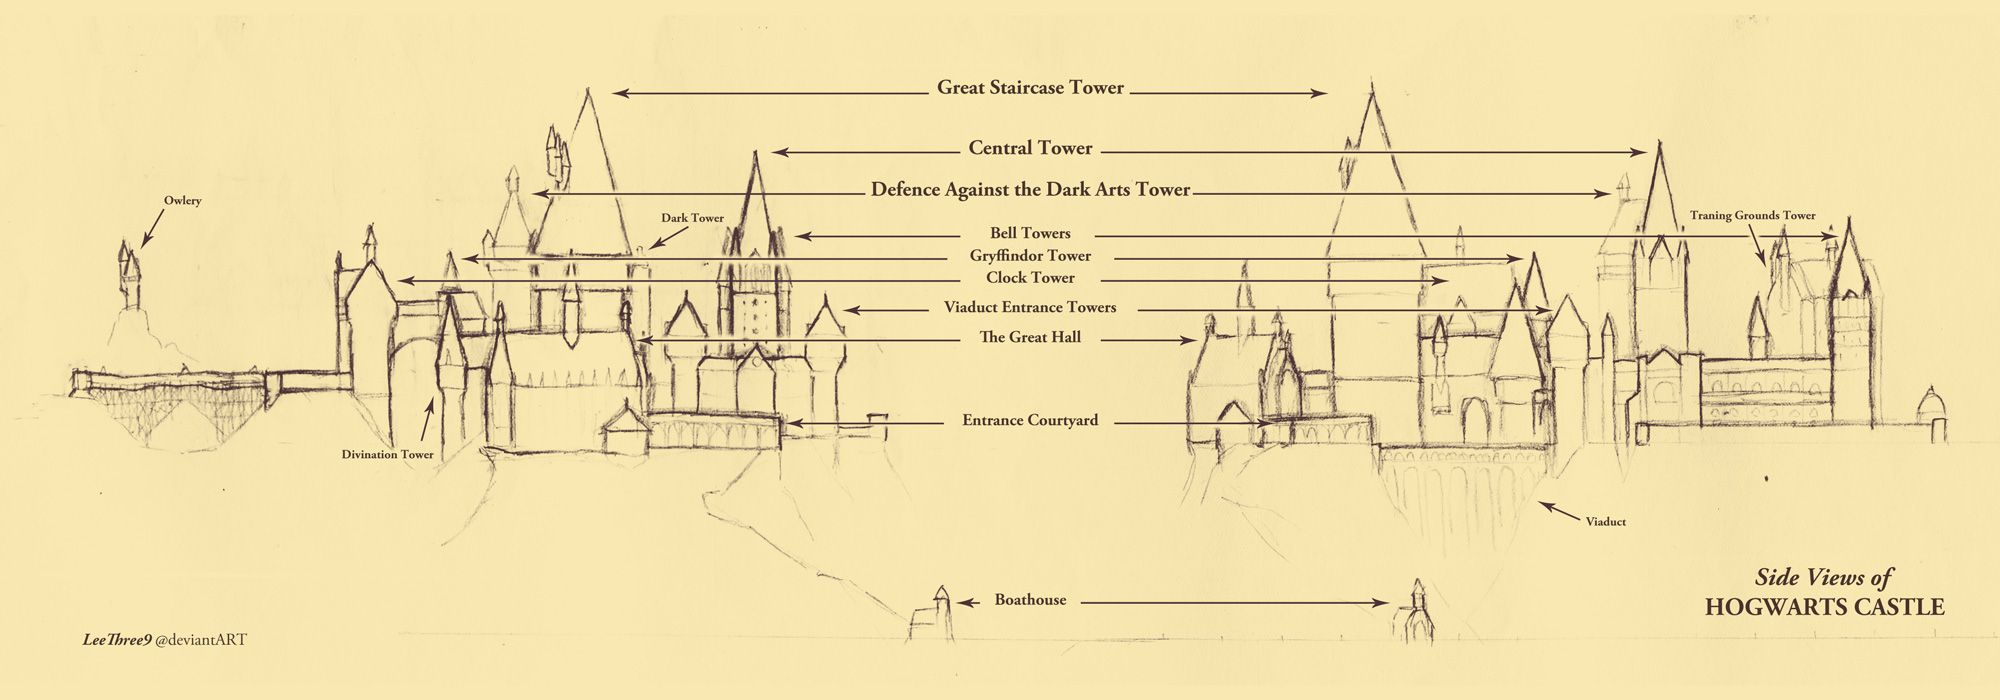 Side views of hogwarts castle by leethree9iantart on side views of hogwarts castle by leethree9iantart on deviantart malvernweather Image collections